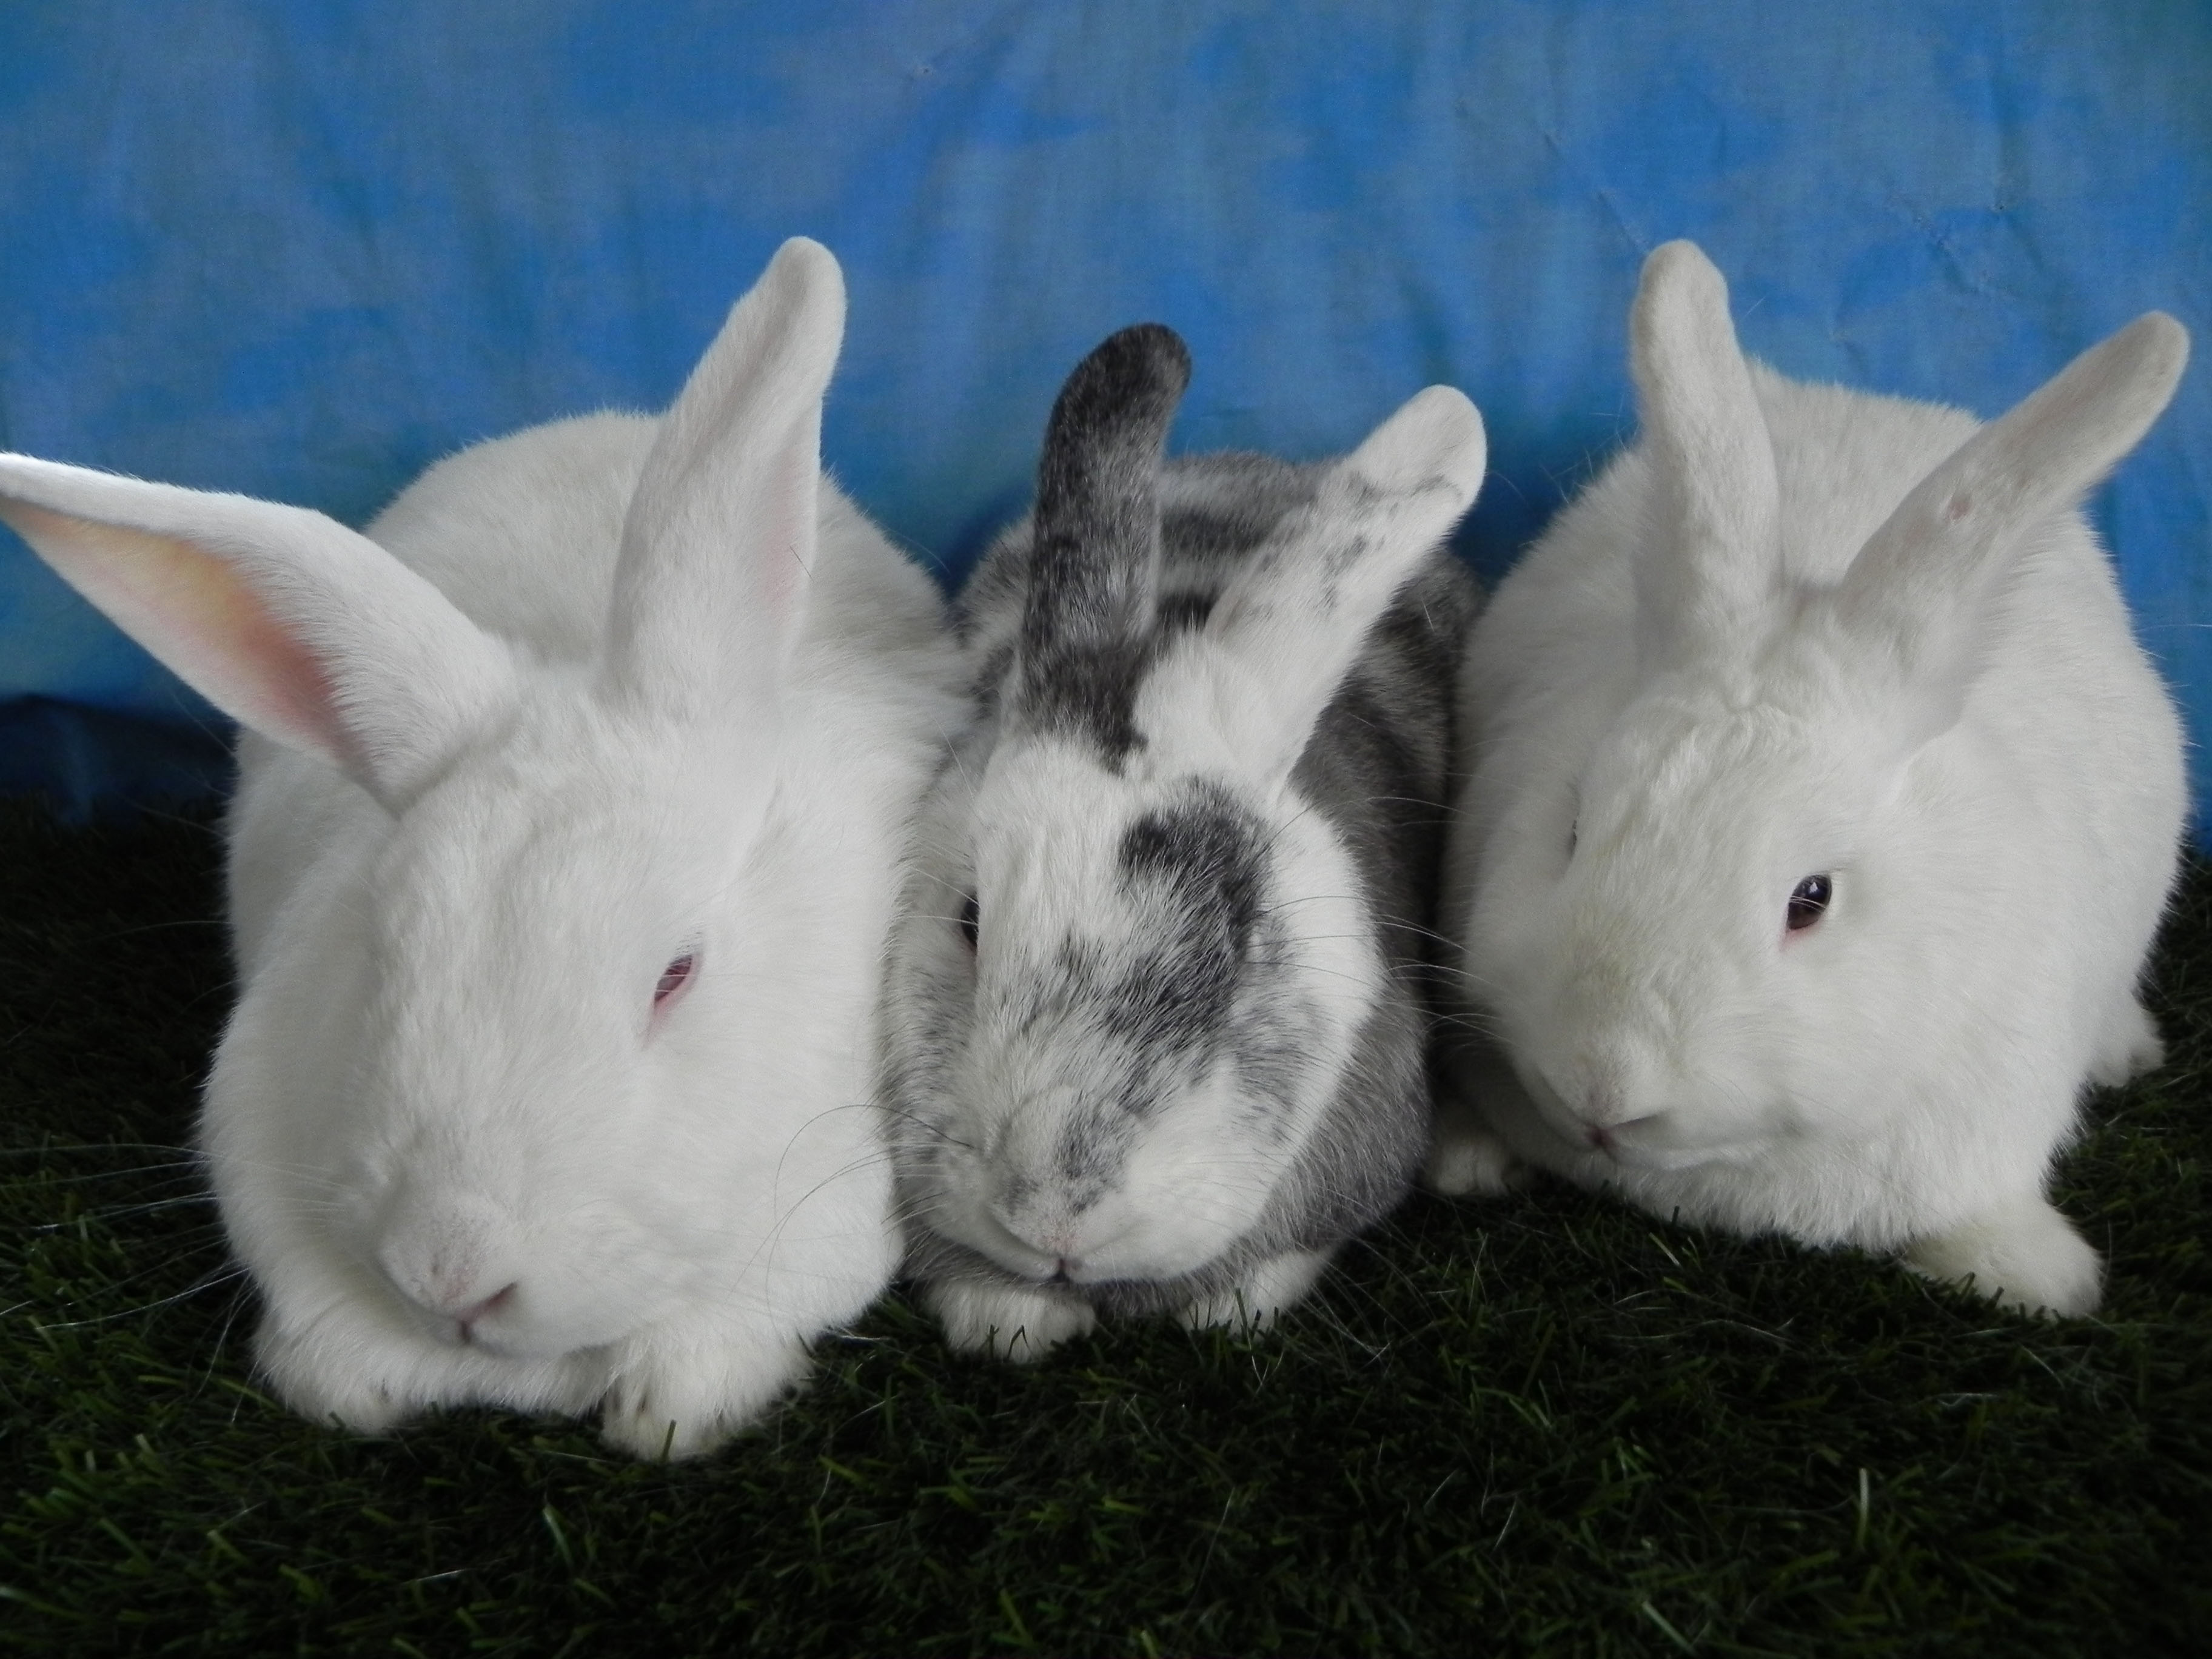 Hopkins, Chantilly and Chiffon